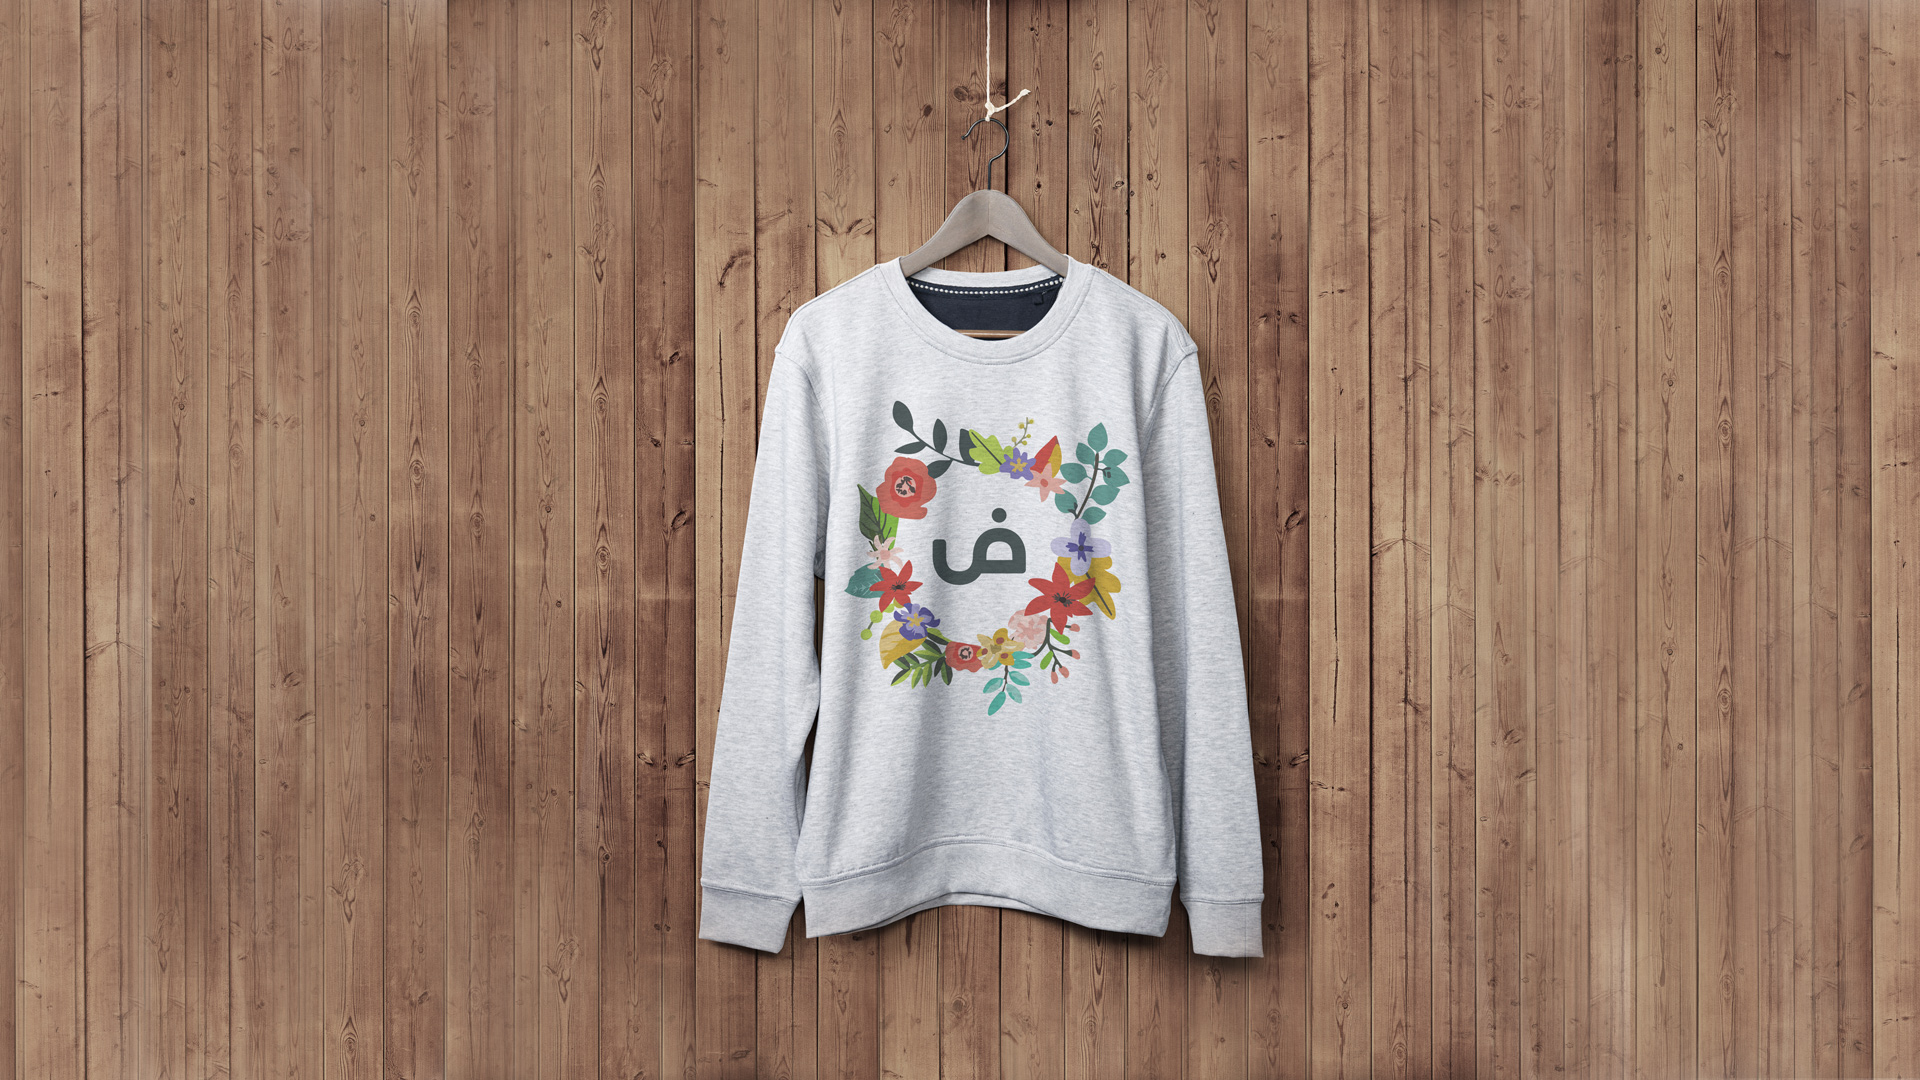 01101_riyadh-sweater01